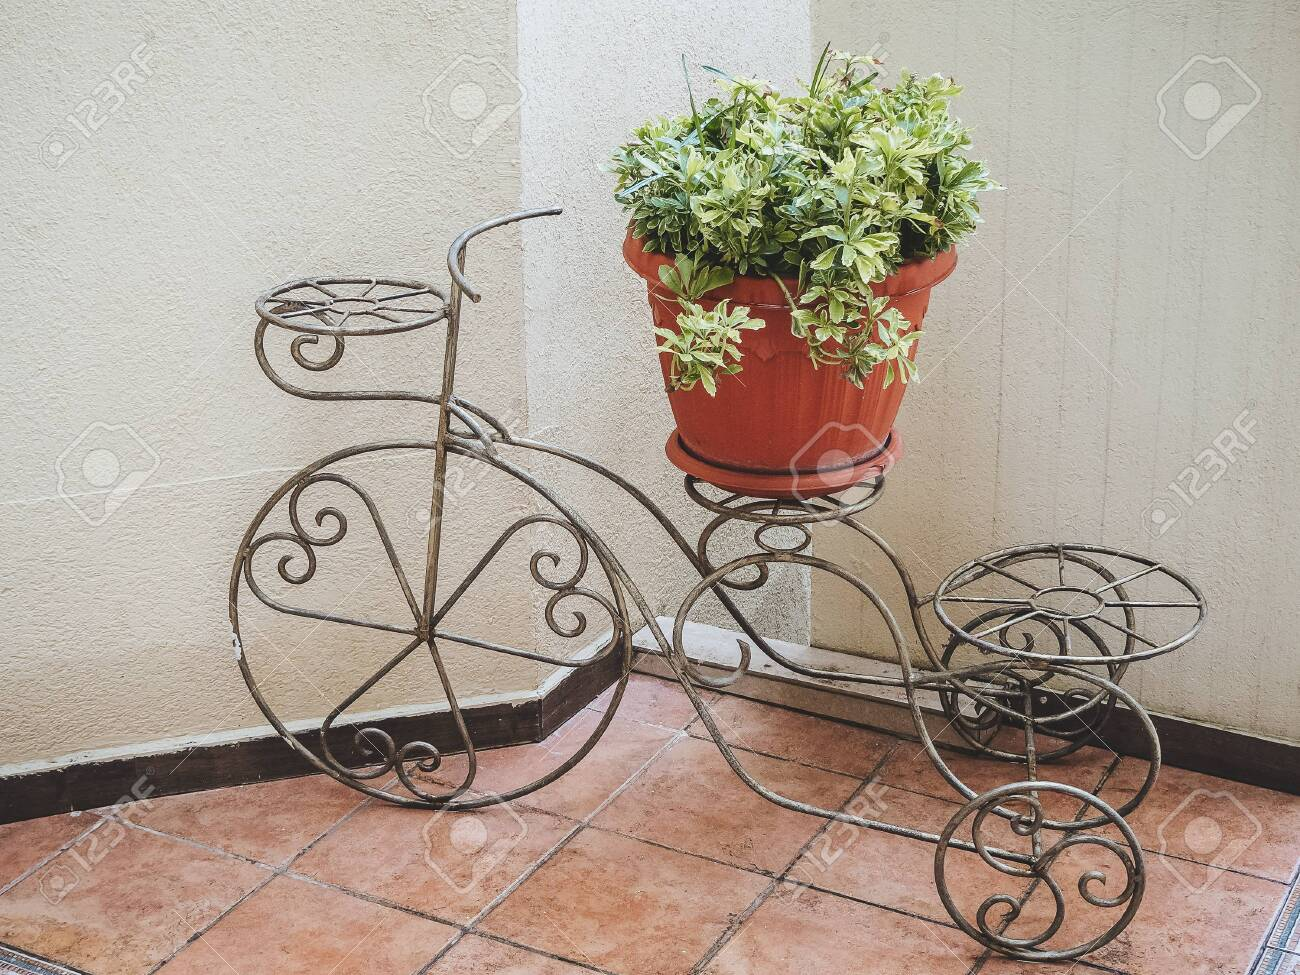 Decorative Wrought Iron Flower Stand In The Shape Of A Bicycle Stock Photo Picture And Royalty Free Image Image 150699252